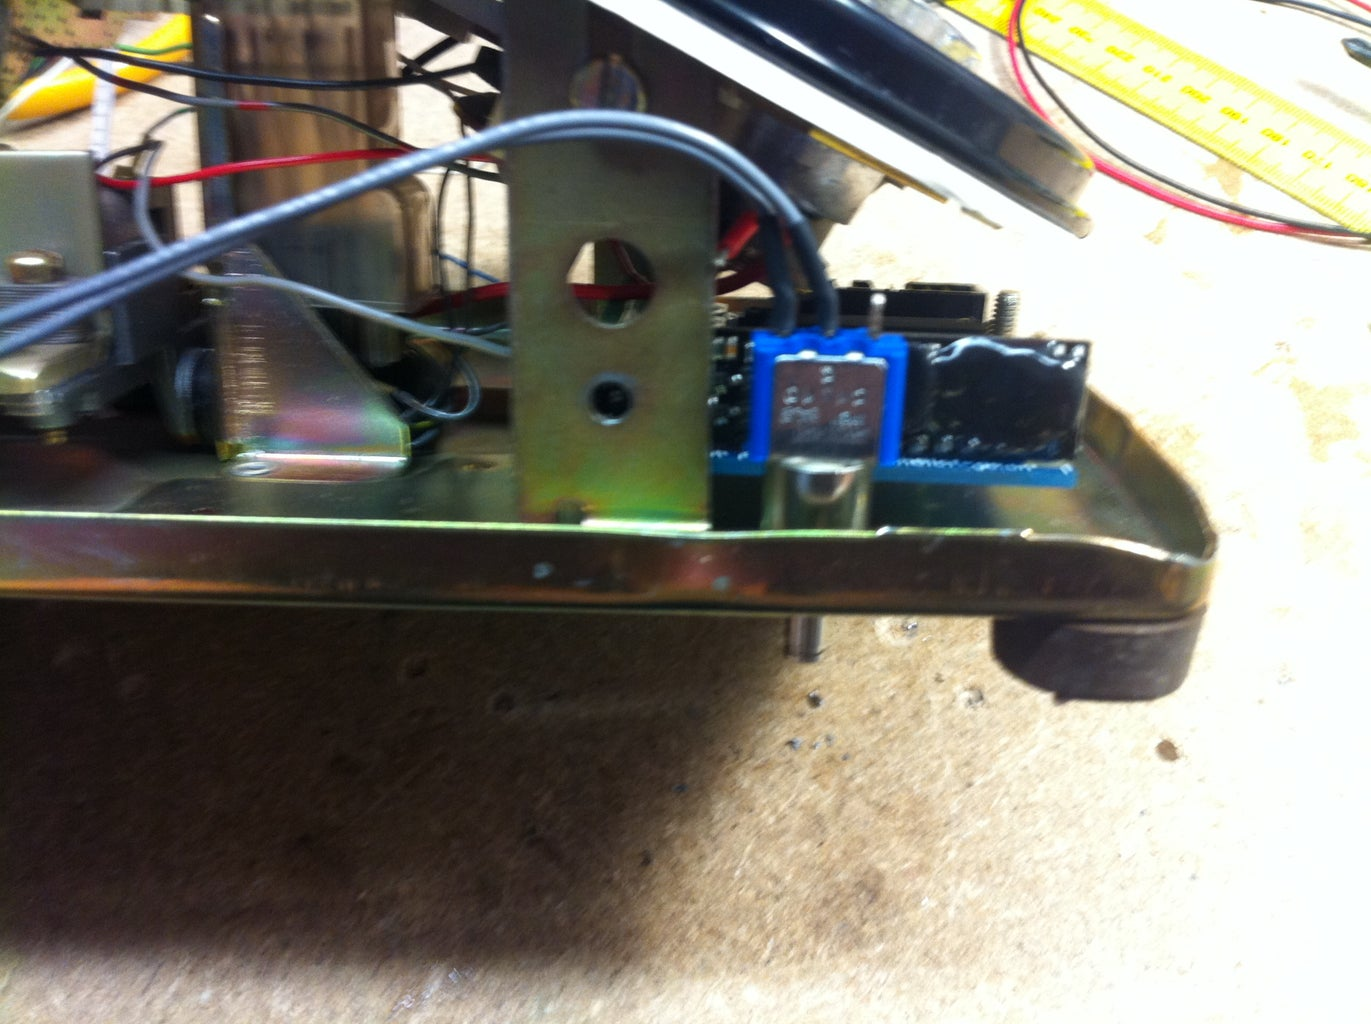 Placing the Switch, Led and Charger Jack